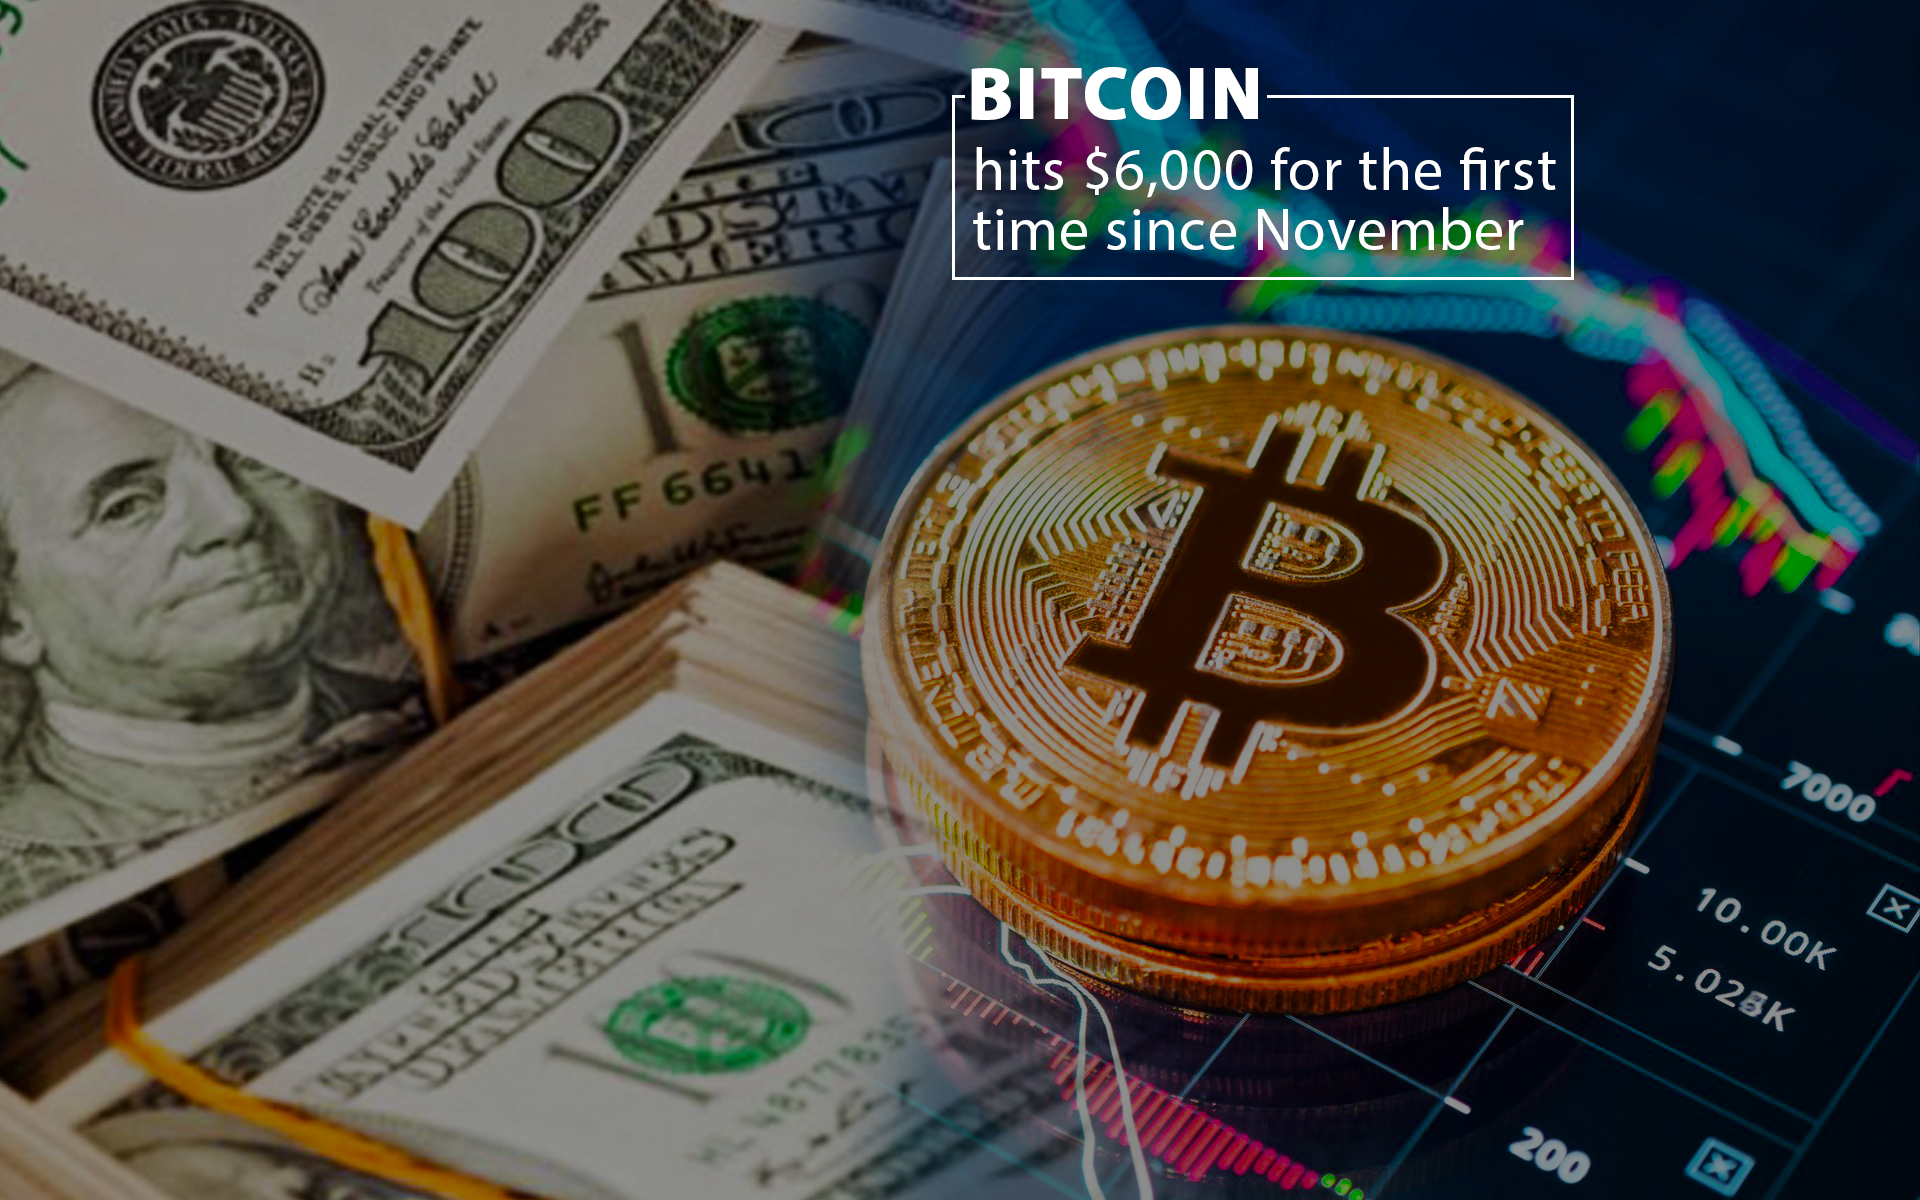 For the First Time since November Bitcoin hits $6000